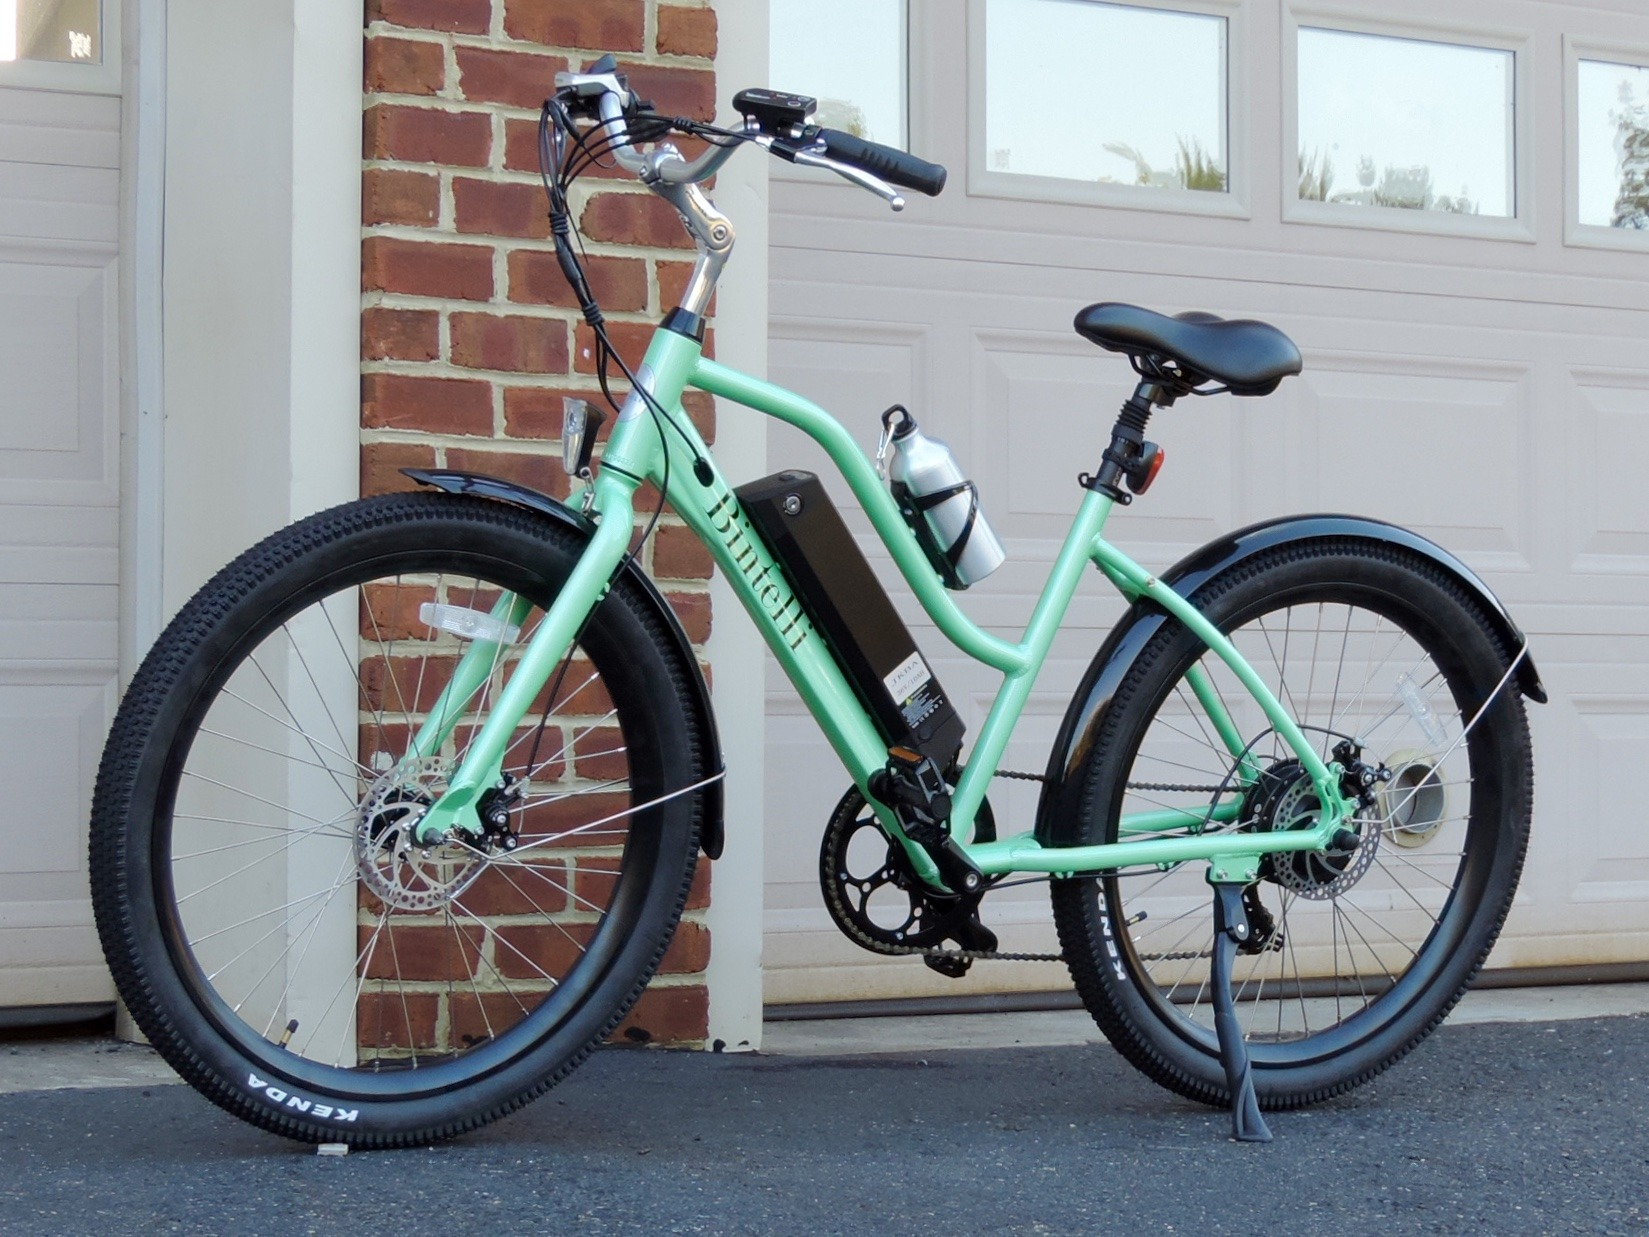 New 2019 Bintelli B1 Electric Beach Cruiser | Edgewater Park, NJ